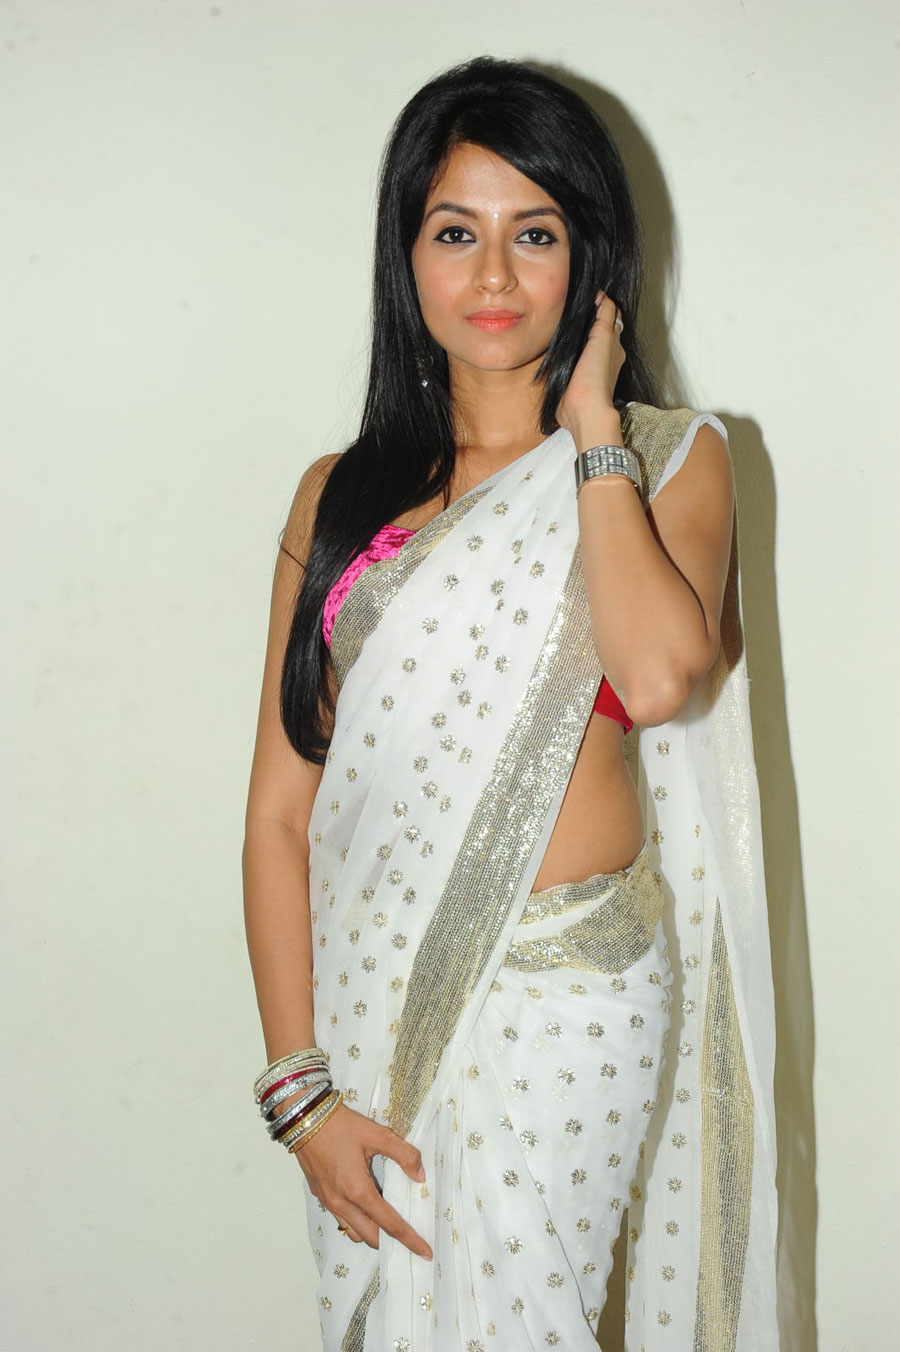 New Face Amrutha in Saree Photo Gallery Amruth10